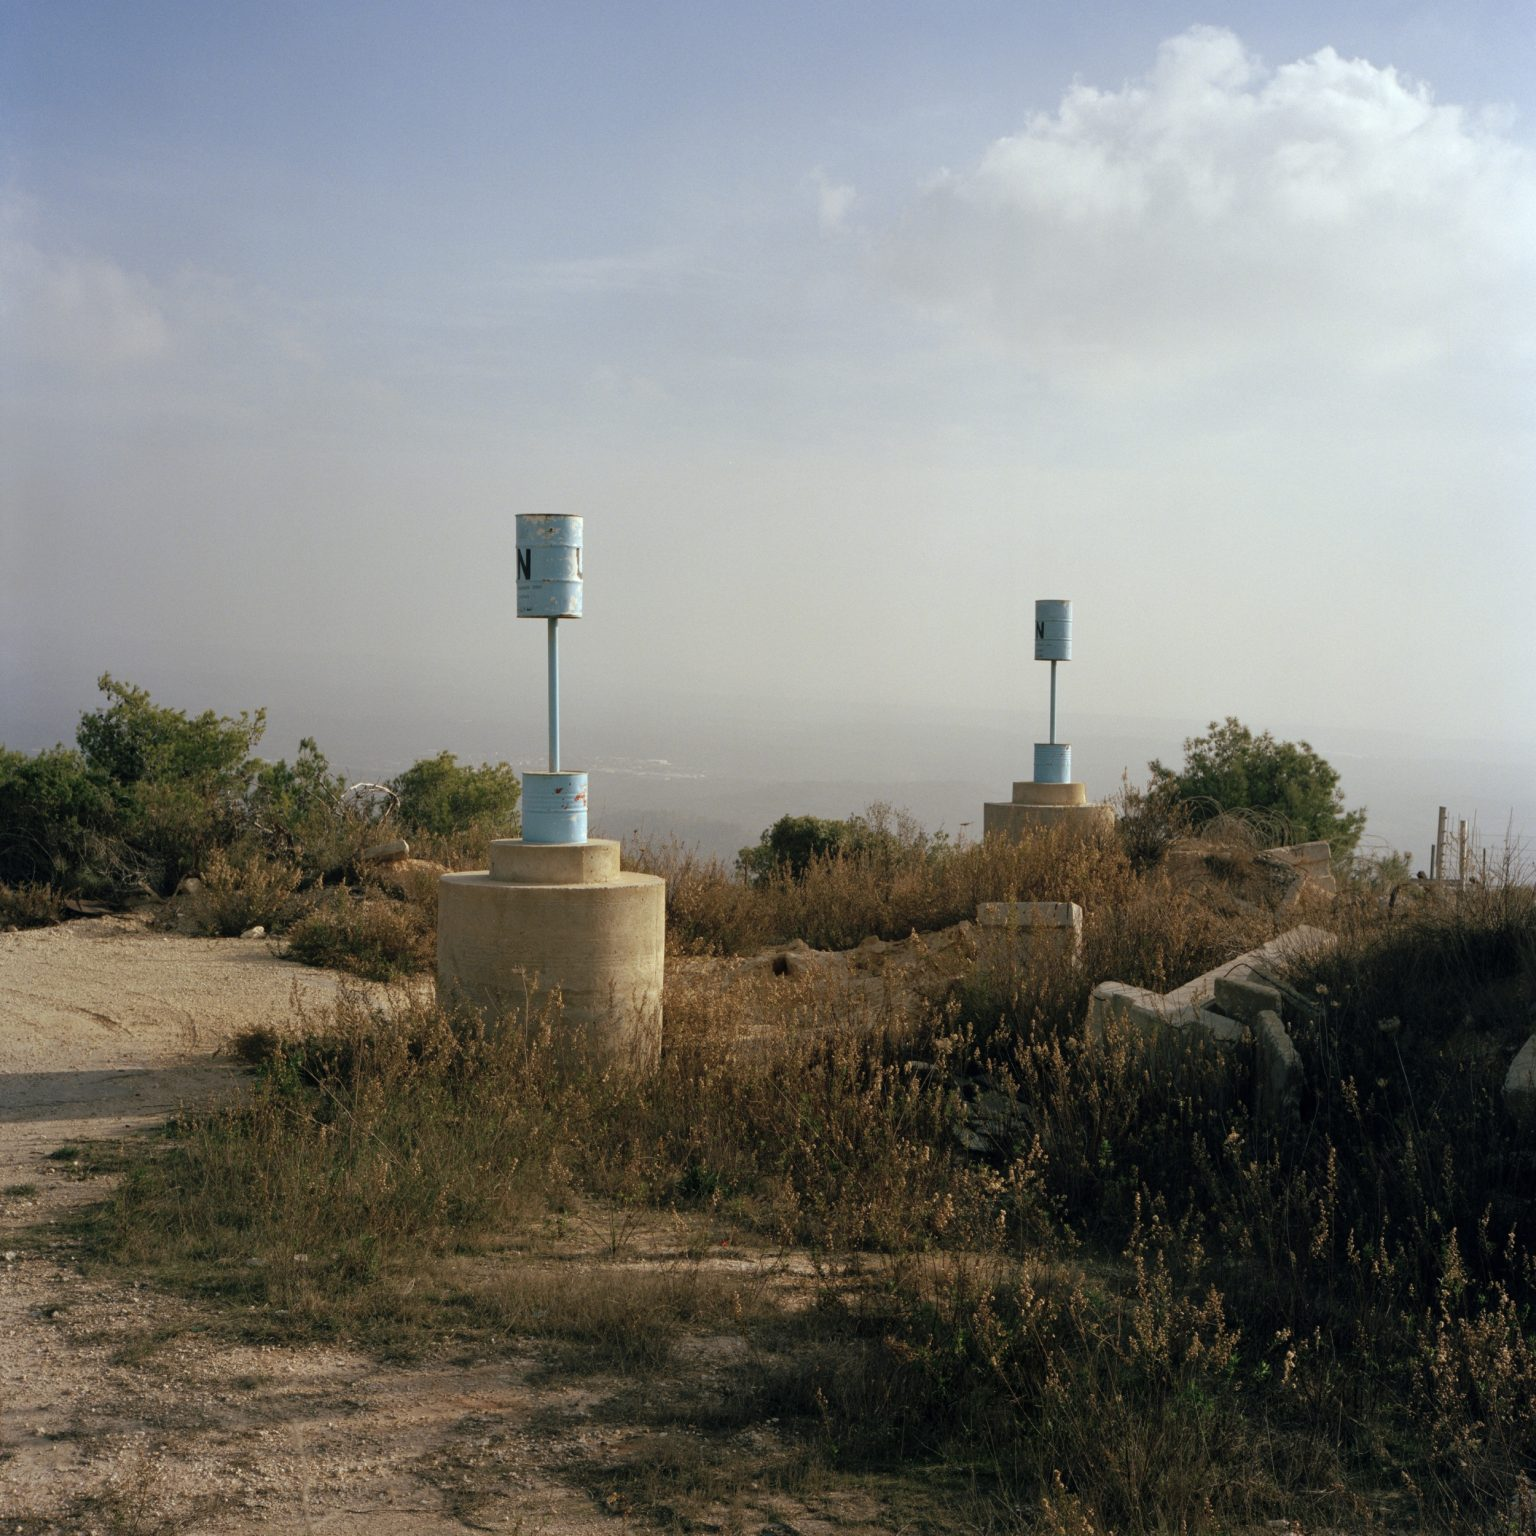 Alma Ach Shaab, Lebanon. Outside the UNIFIL Italian Advanced Position 1-31 along the Blue Line, Blue Pillars are planted by Unifl to sign the border on the ground. For the position of each pillar an agreement is made between the Lebanese army and the Israeli Defence Force, brokered by Unifl representatives.